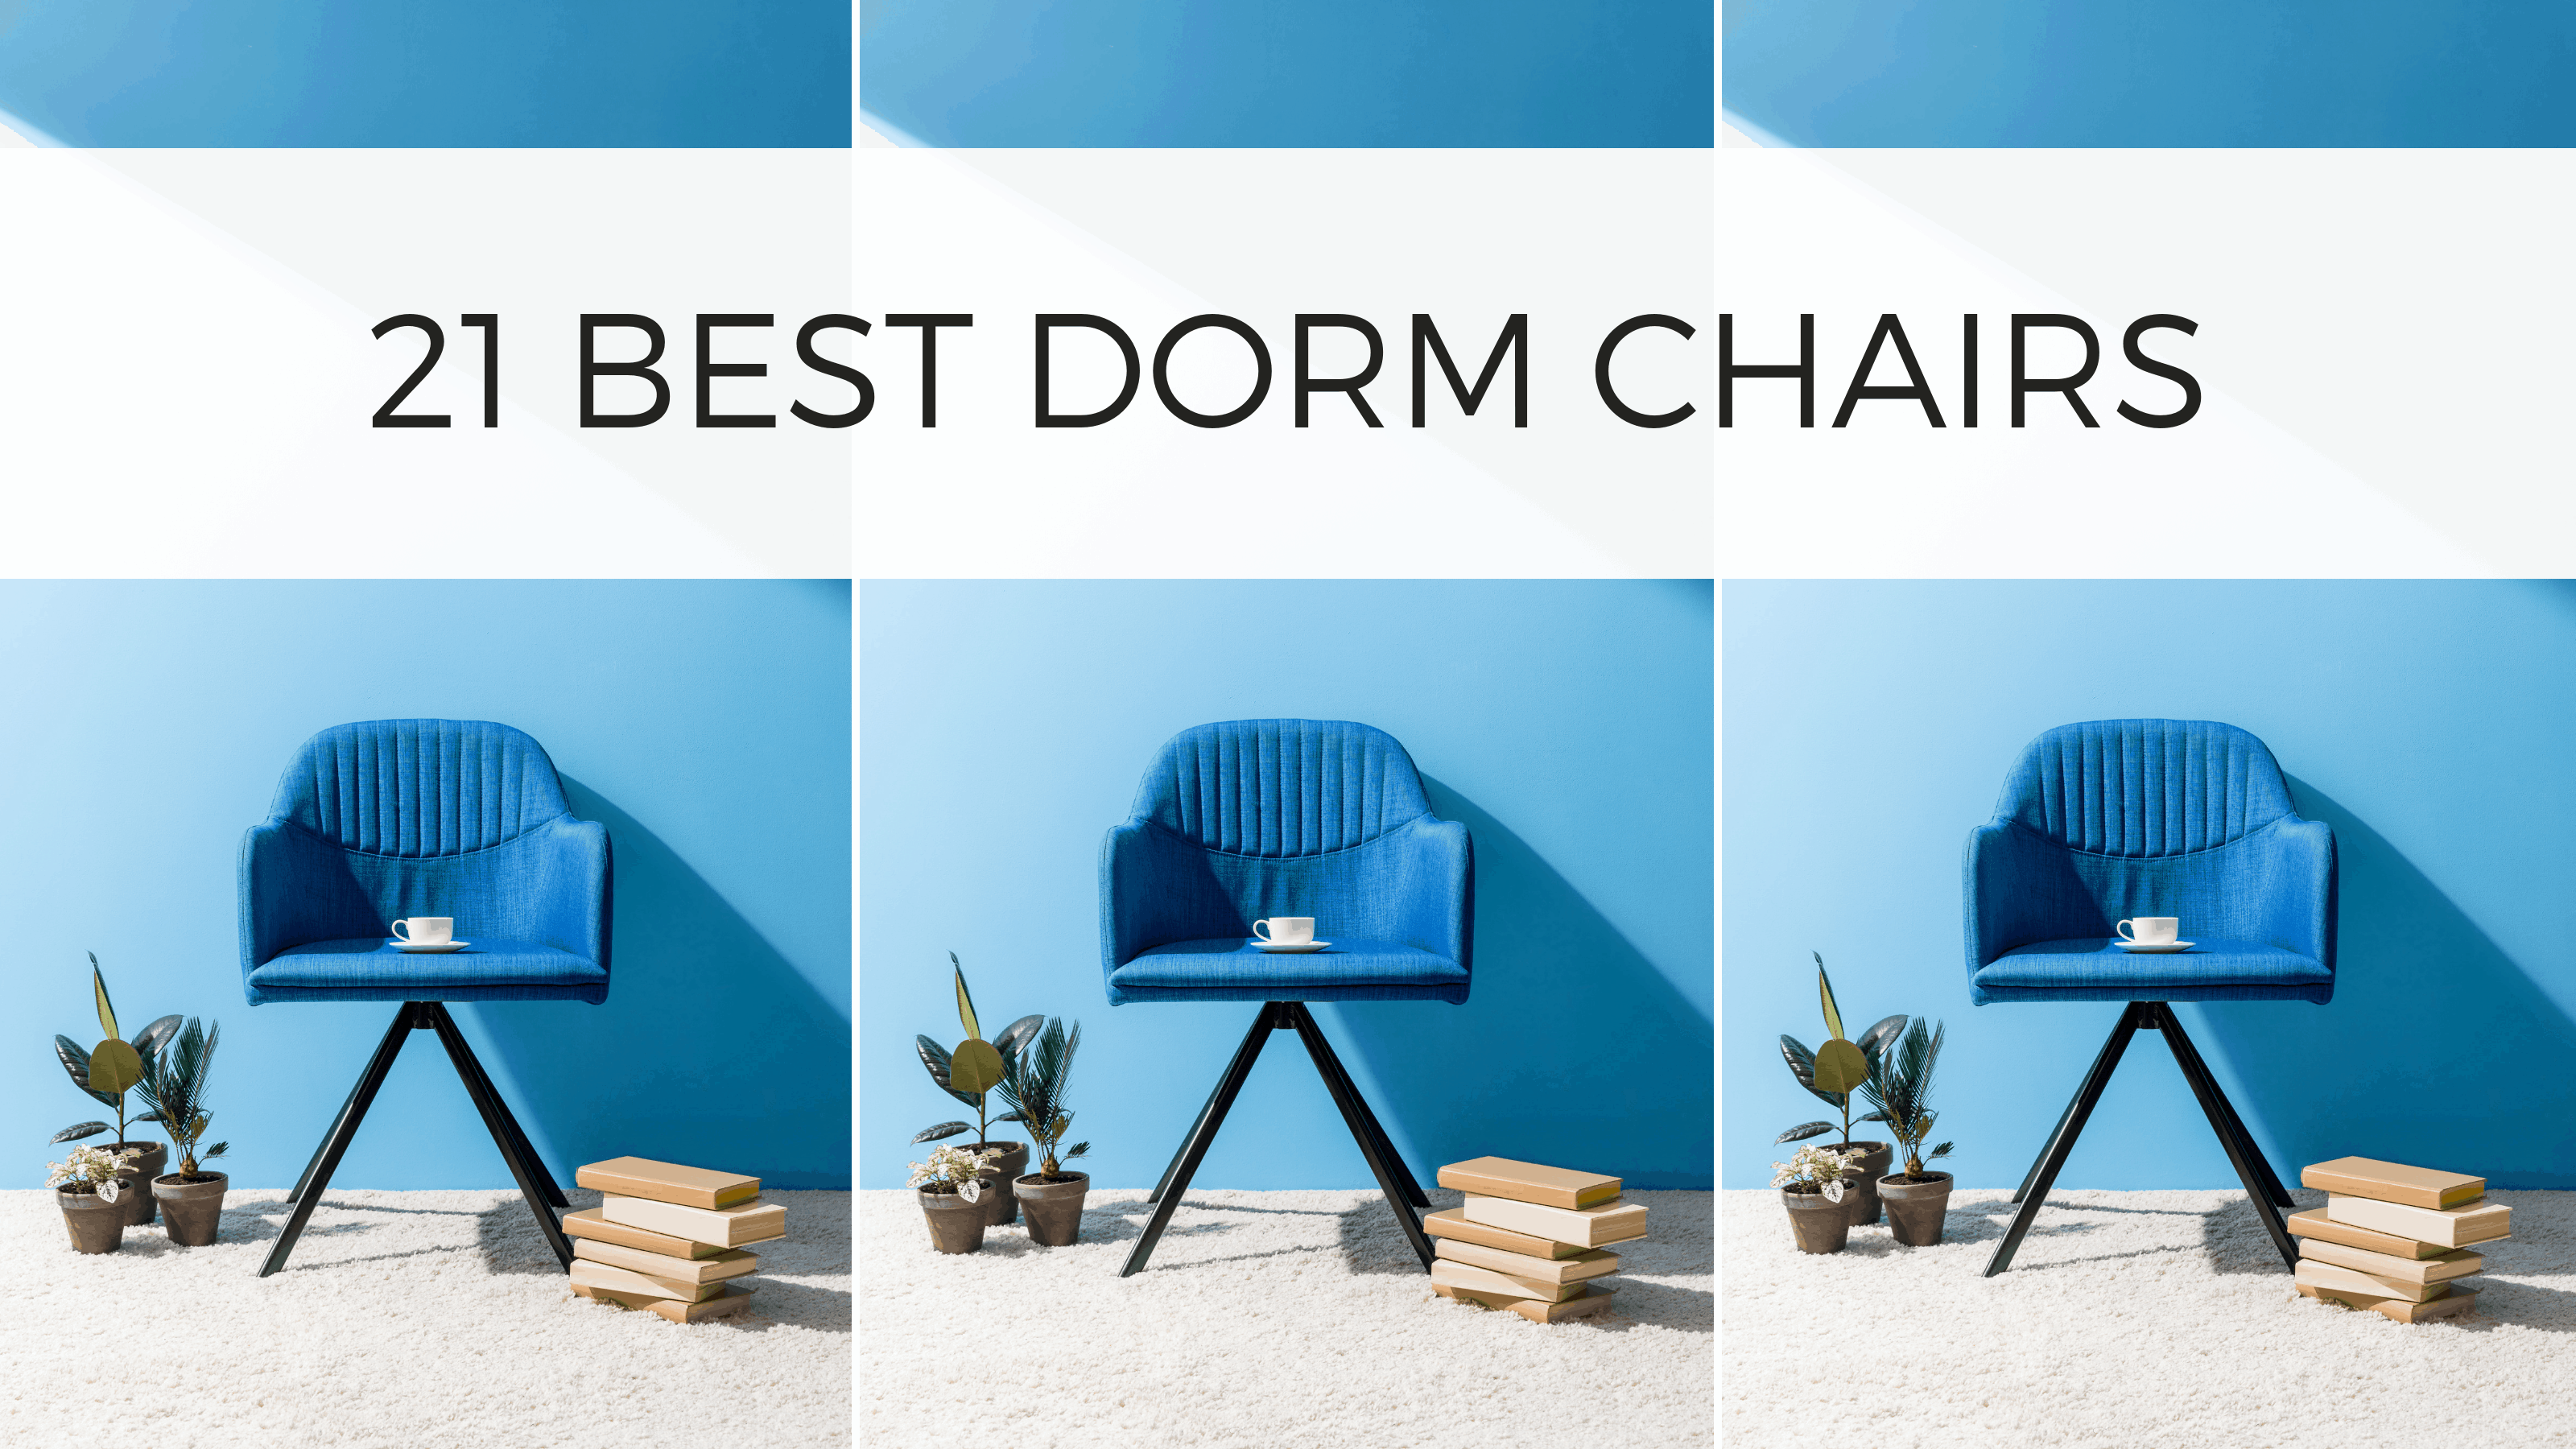 21 Best Dorm Chairs To Buy For Your College Dorm Room By Sophia Lee